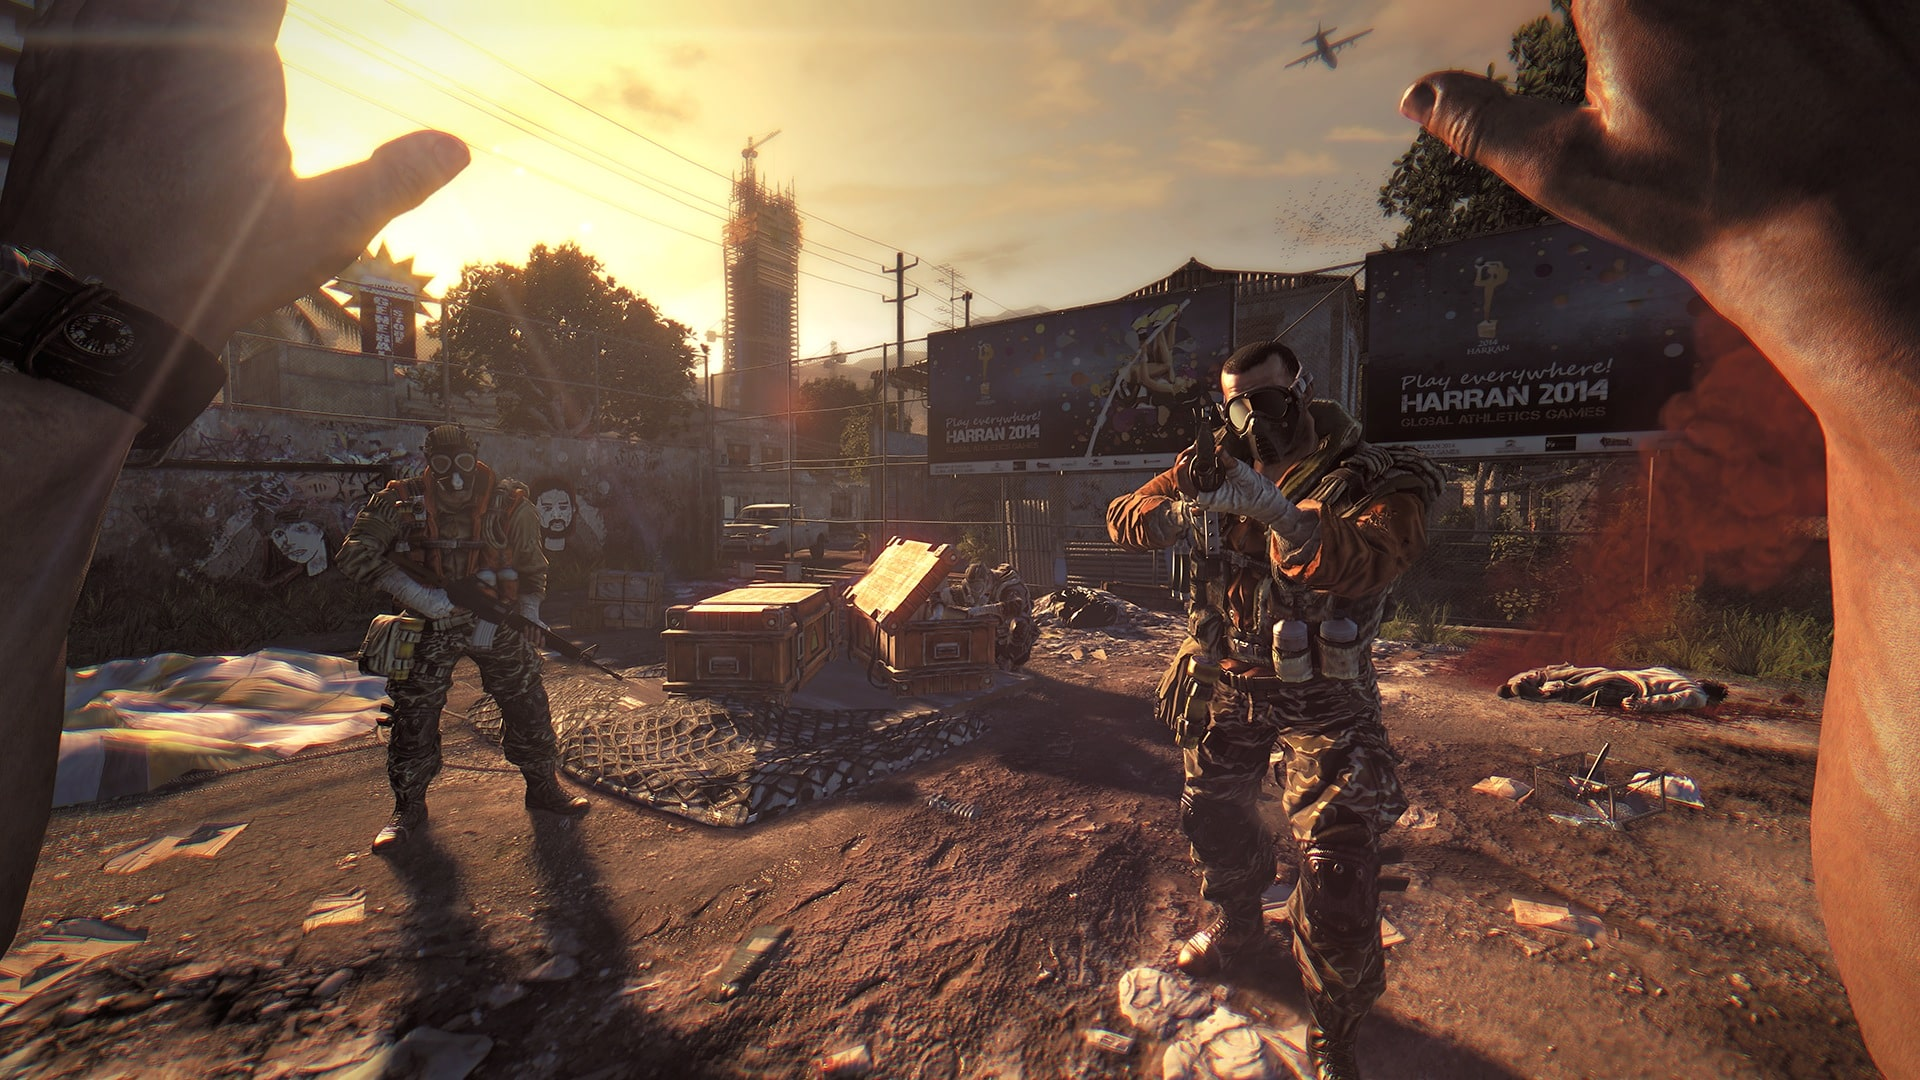 Dying Light 2 Hd Wallpapers 7wallpapers Net